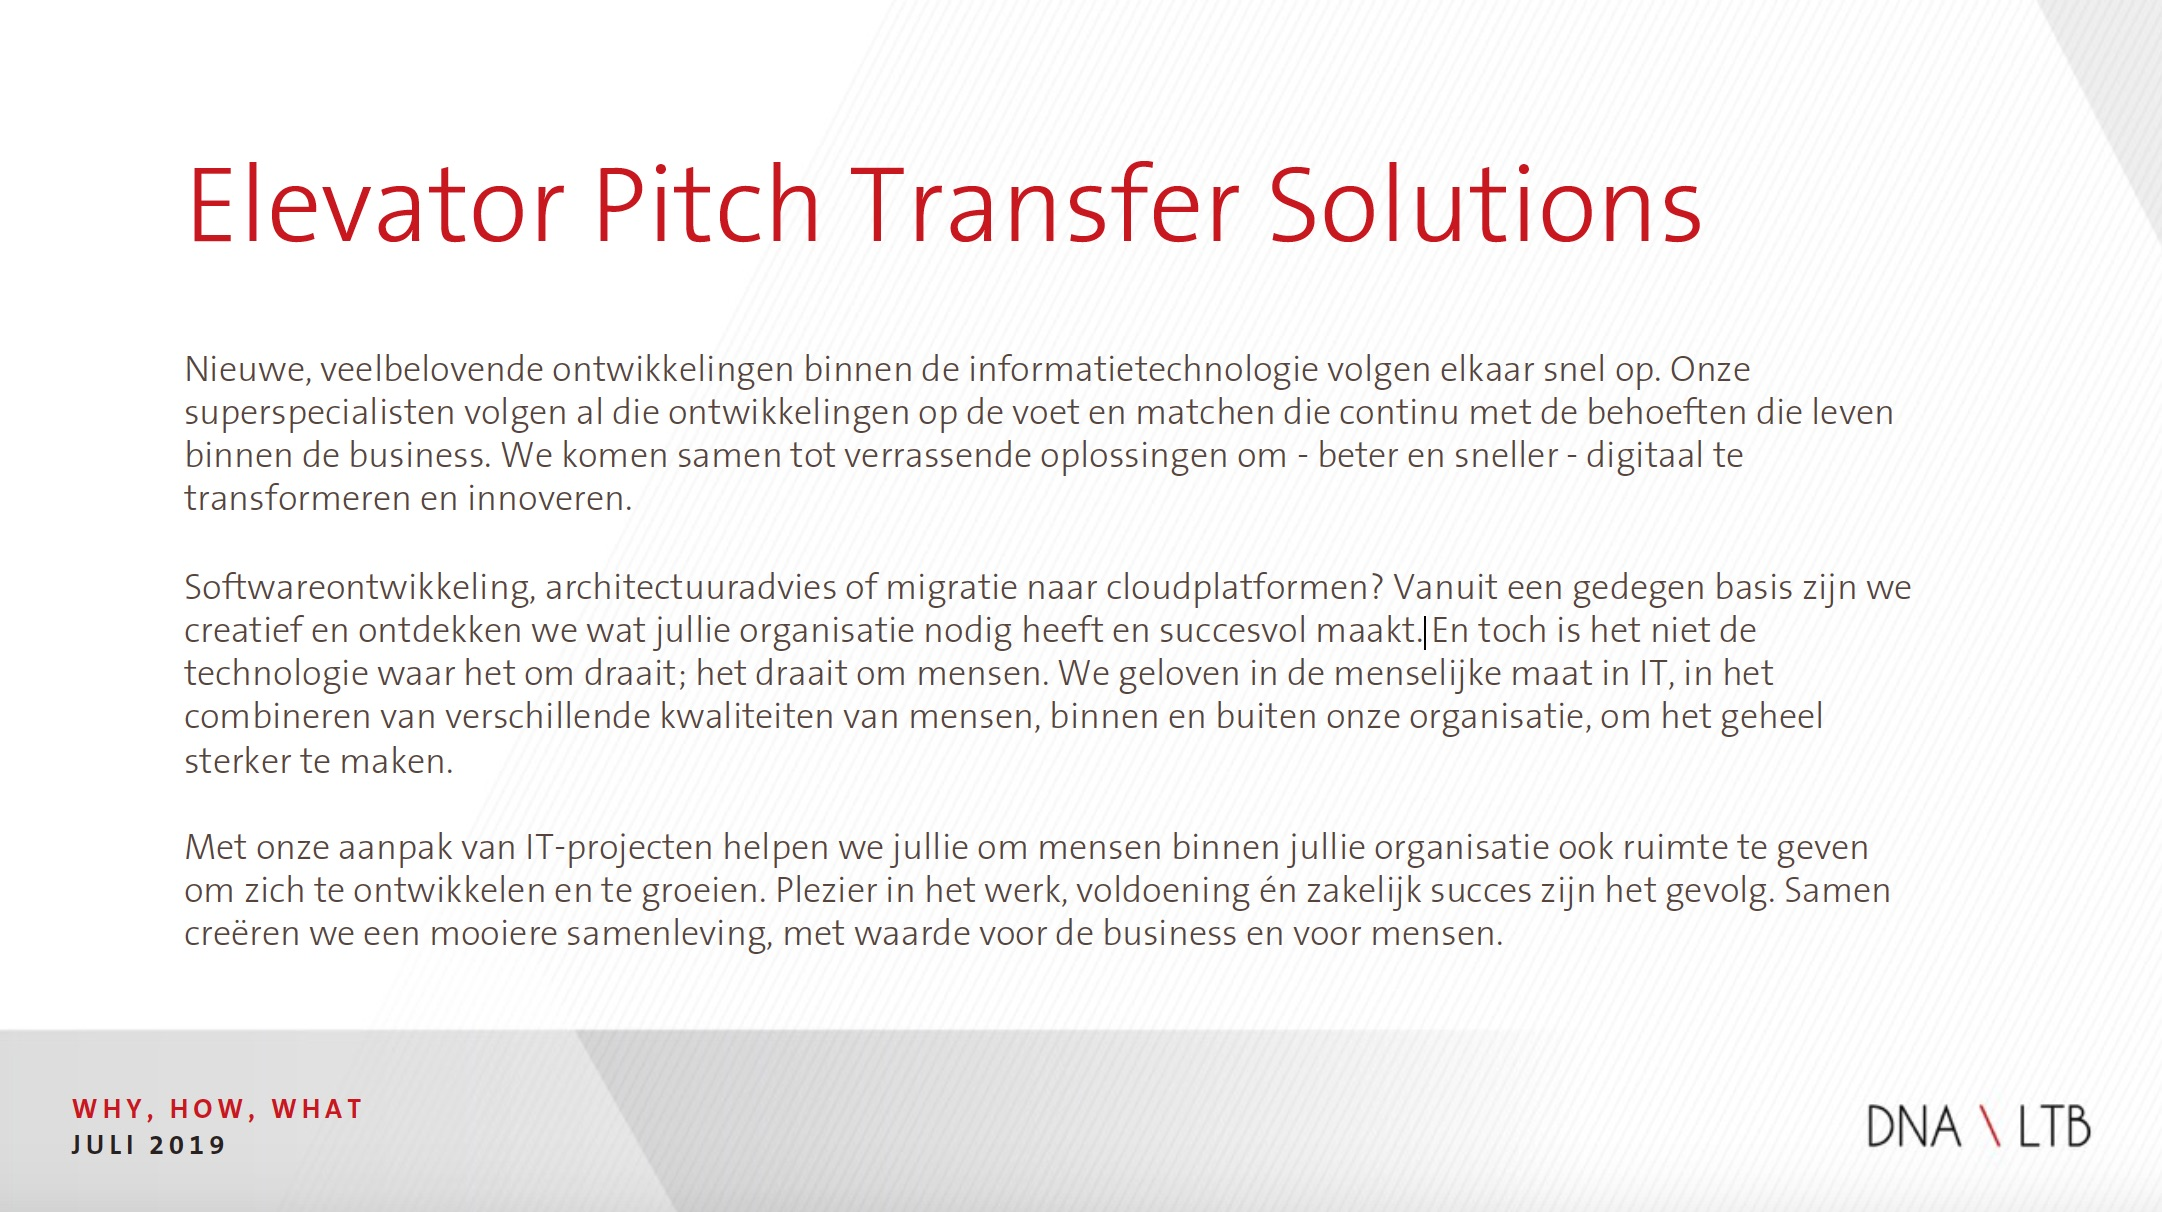 Elevator Pitch Transfer Solutions